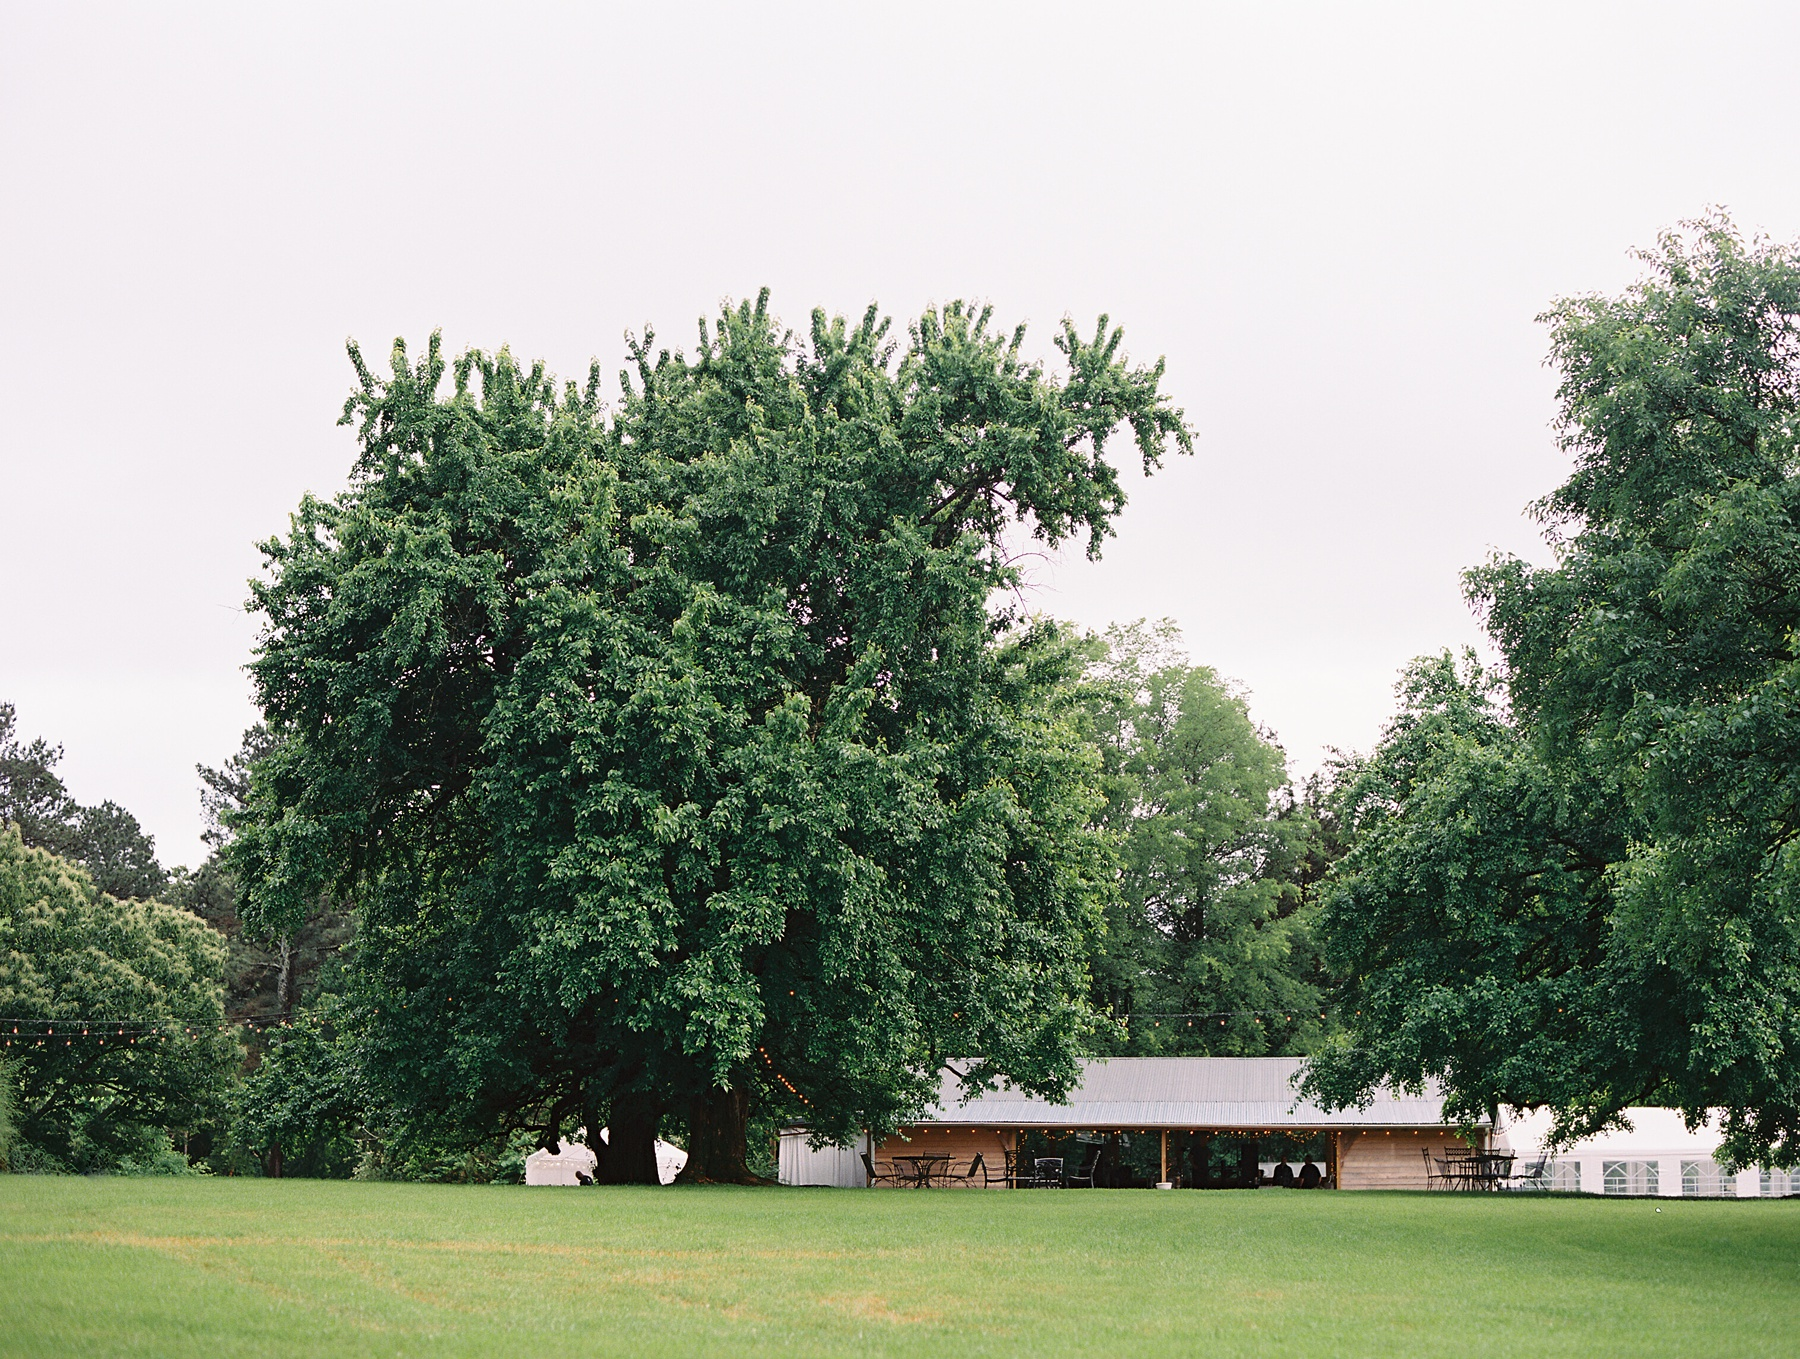 Hedge Farm Weddings Tennessee Wedding Photographer_0556.jpg